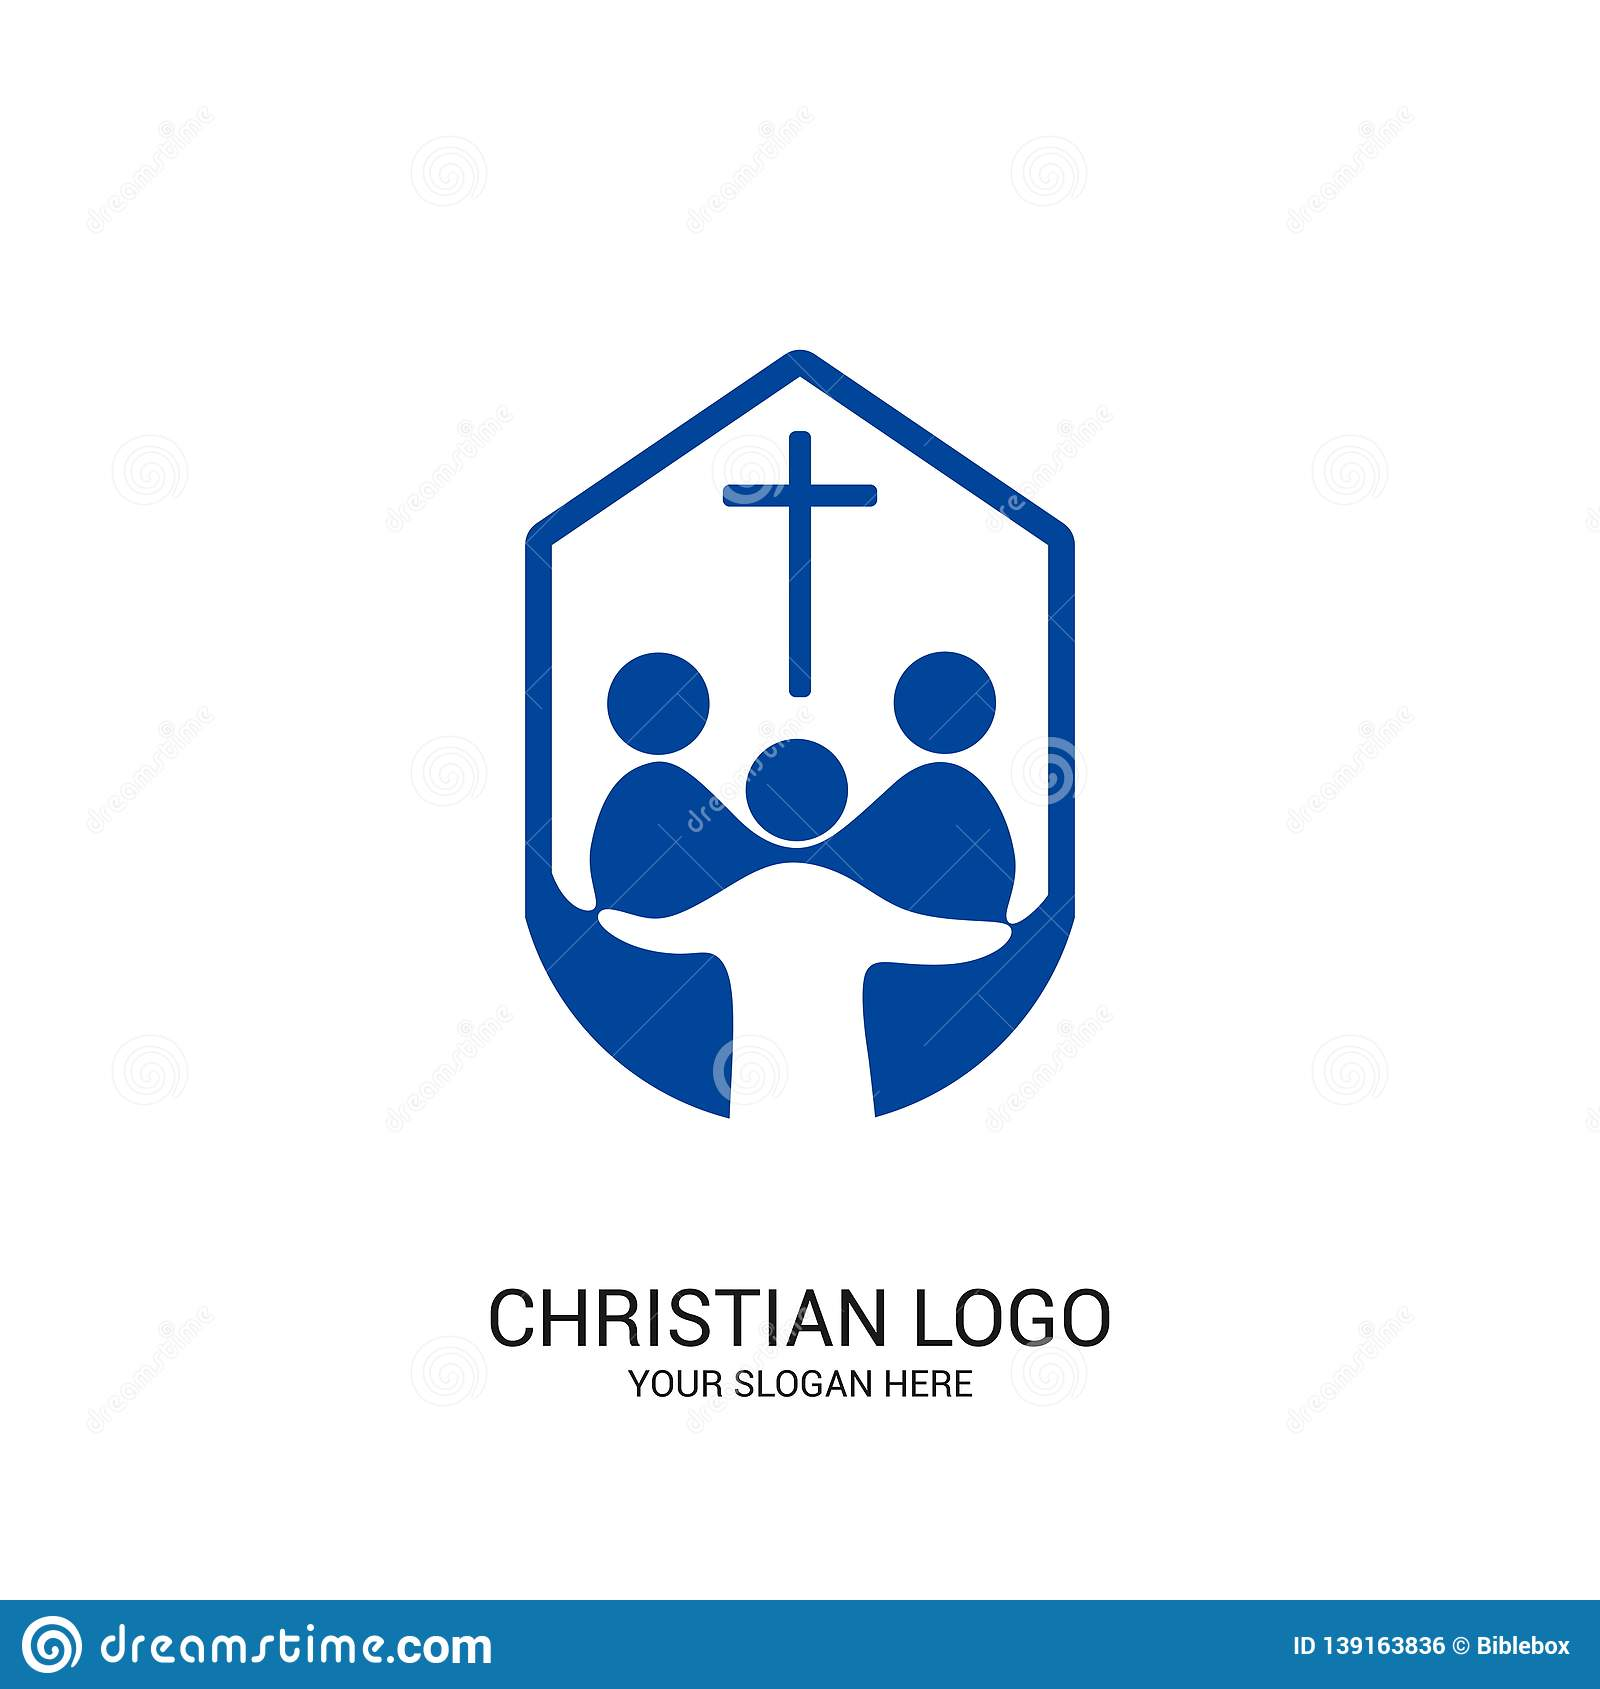 Christian church logo. Bible symbols. Community of believers in Jesus Christ